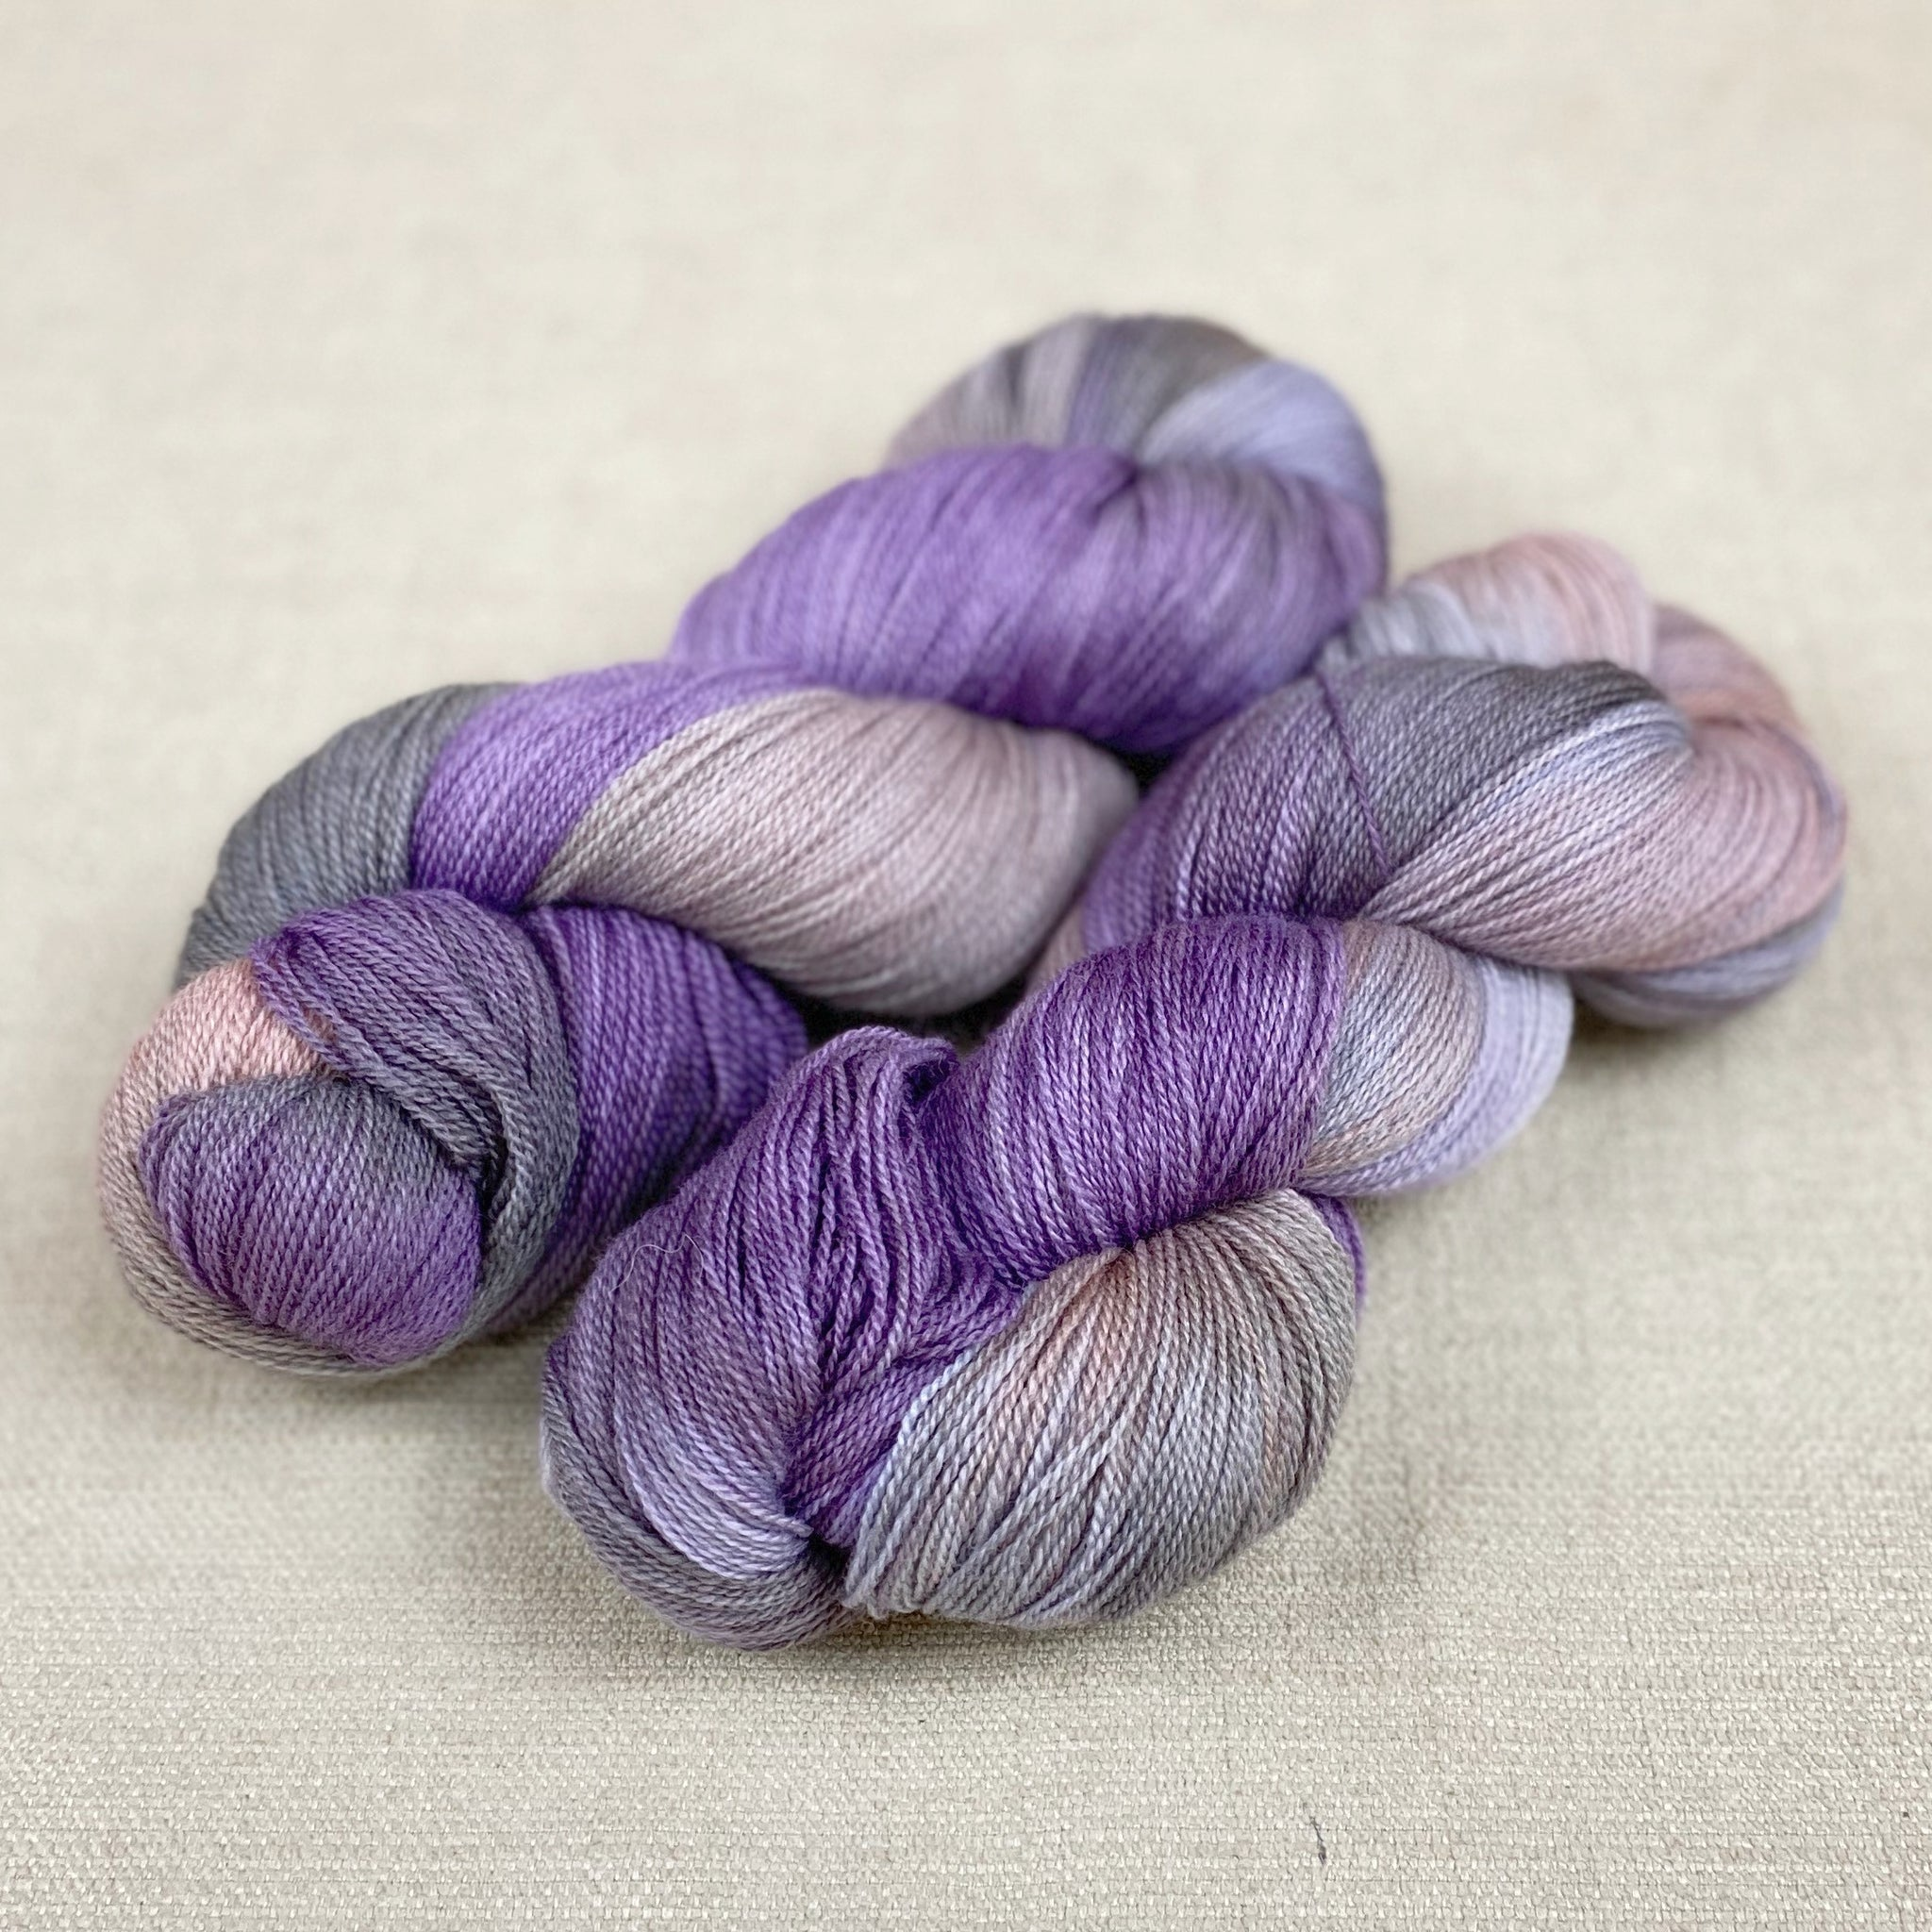 Shades of Weardale Laceweight - 100g